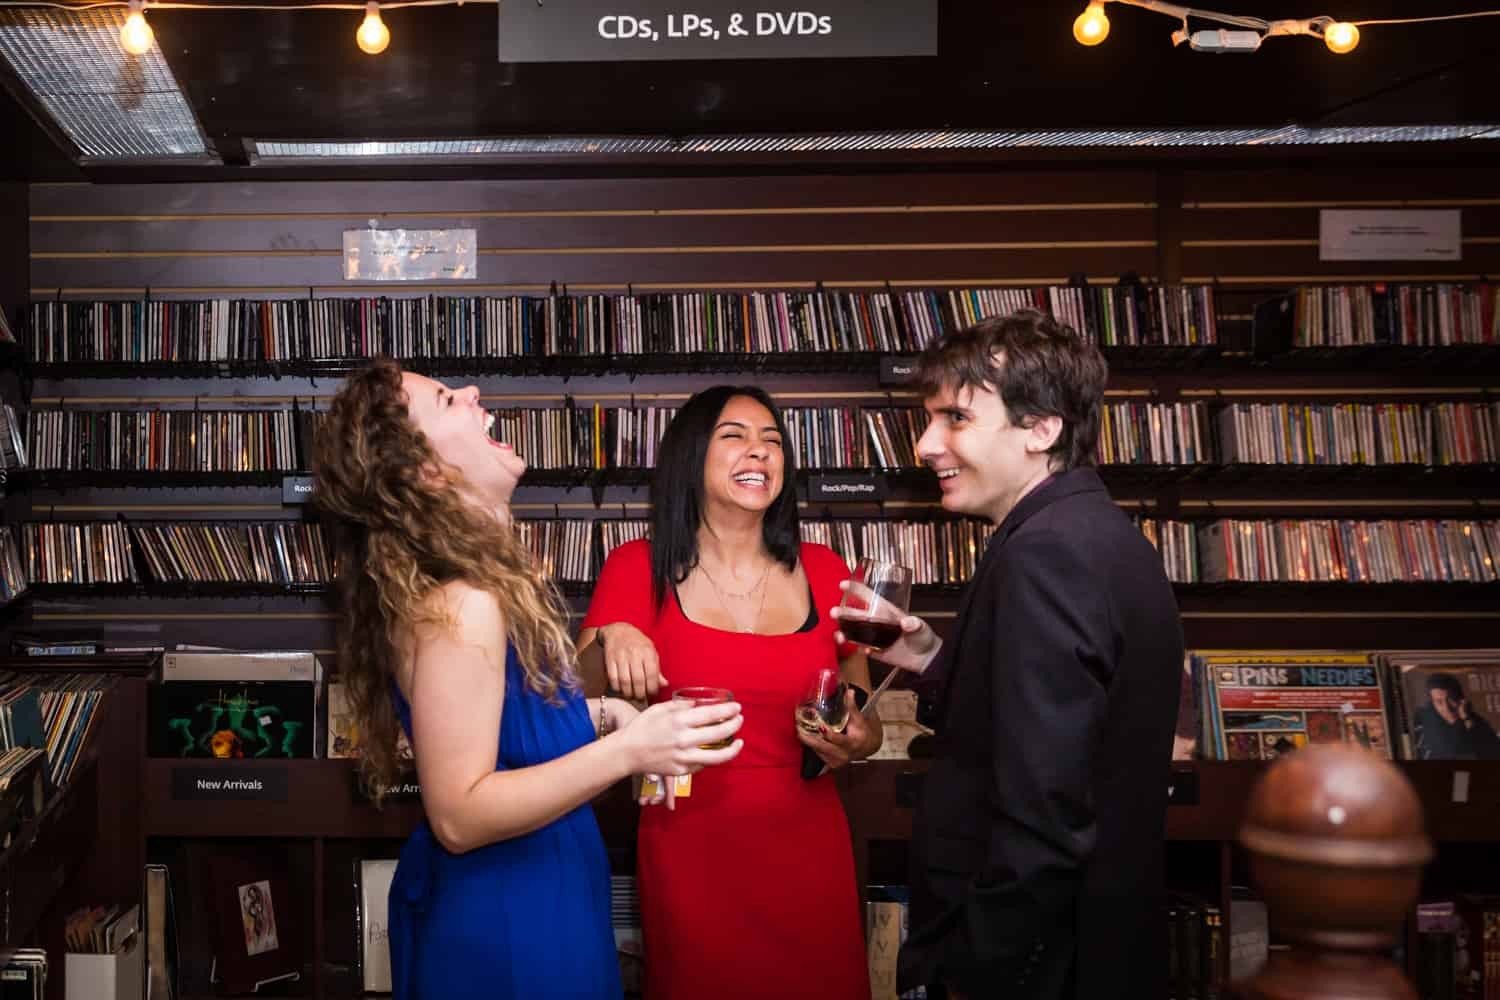 Three guests laughing in front of rows of CDs at a Housing Works Bookstore Cafe wedding